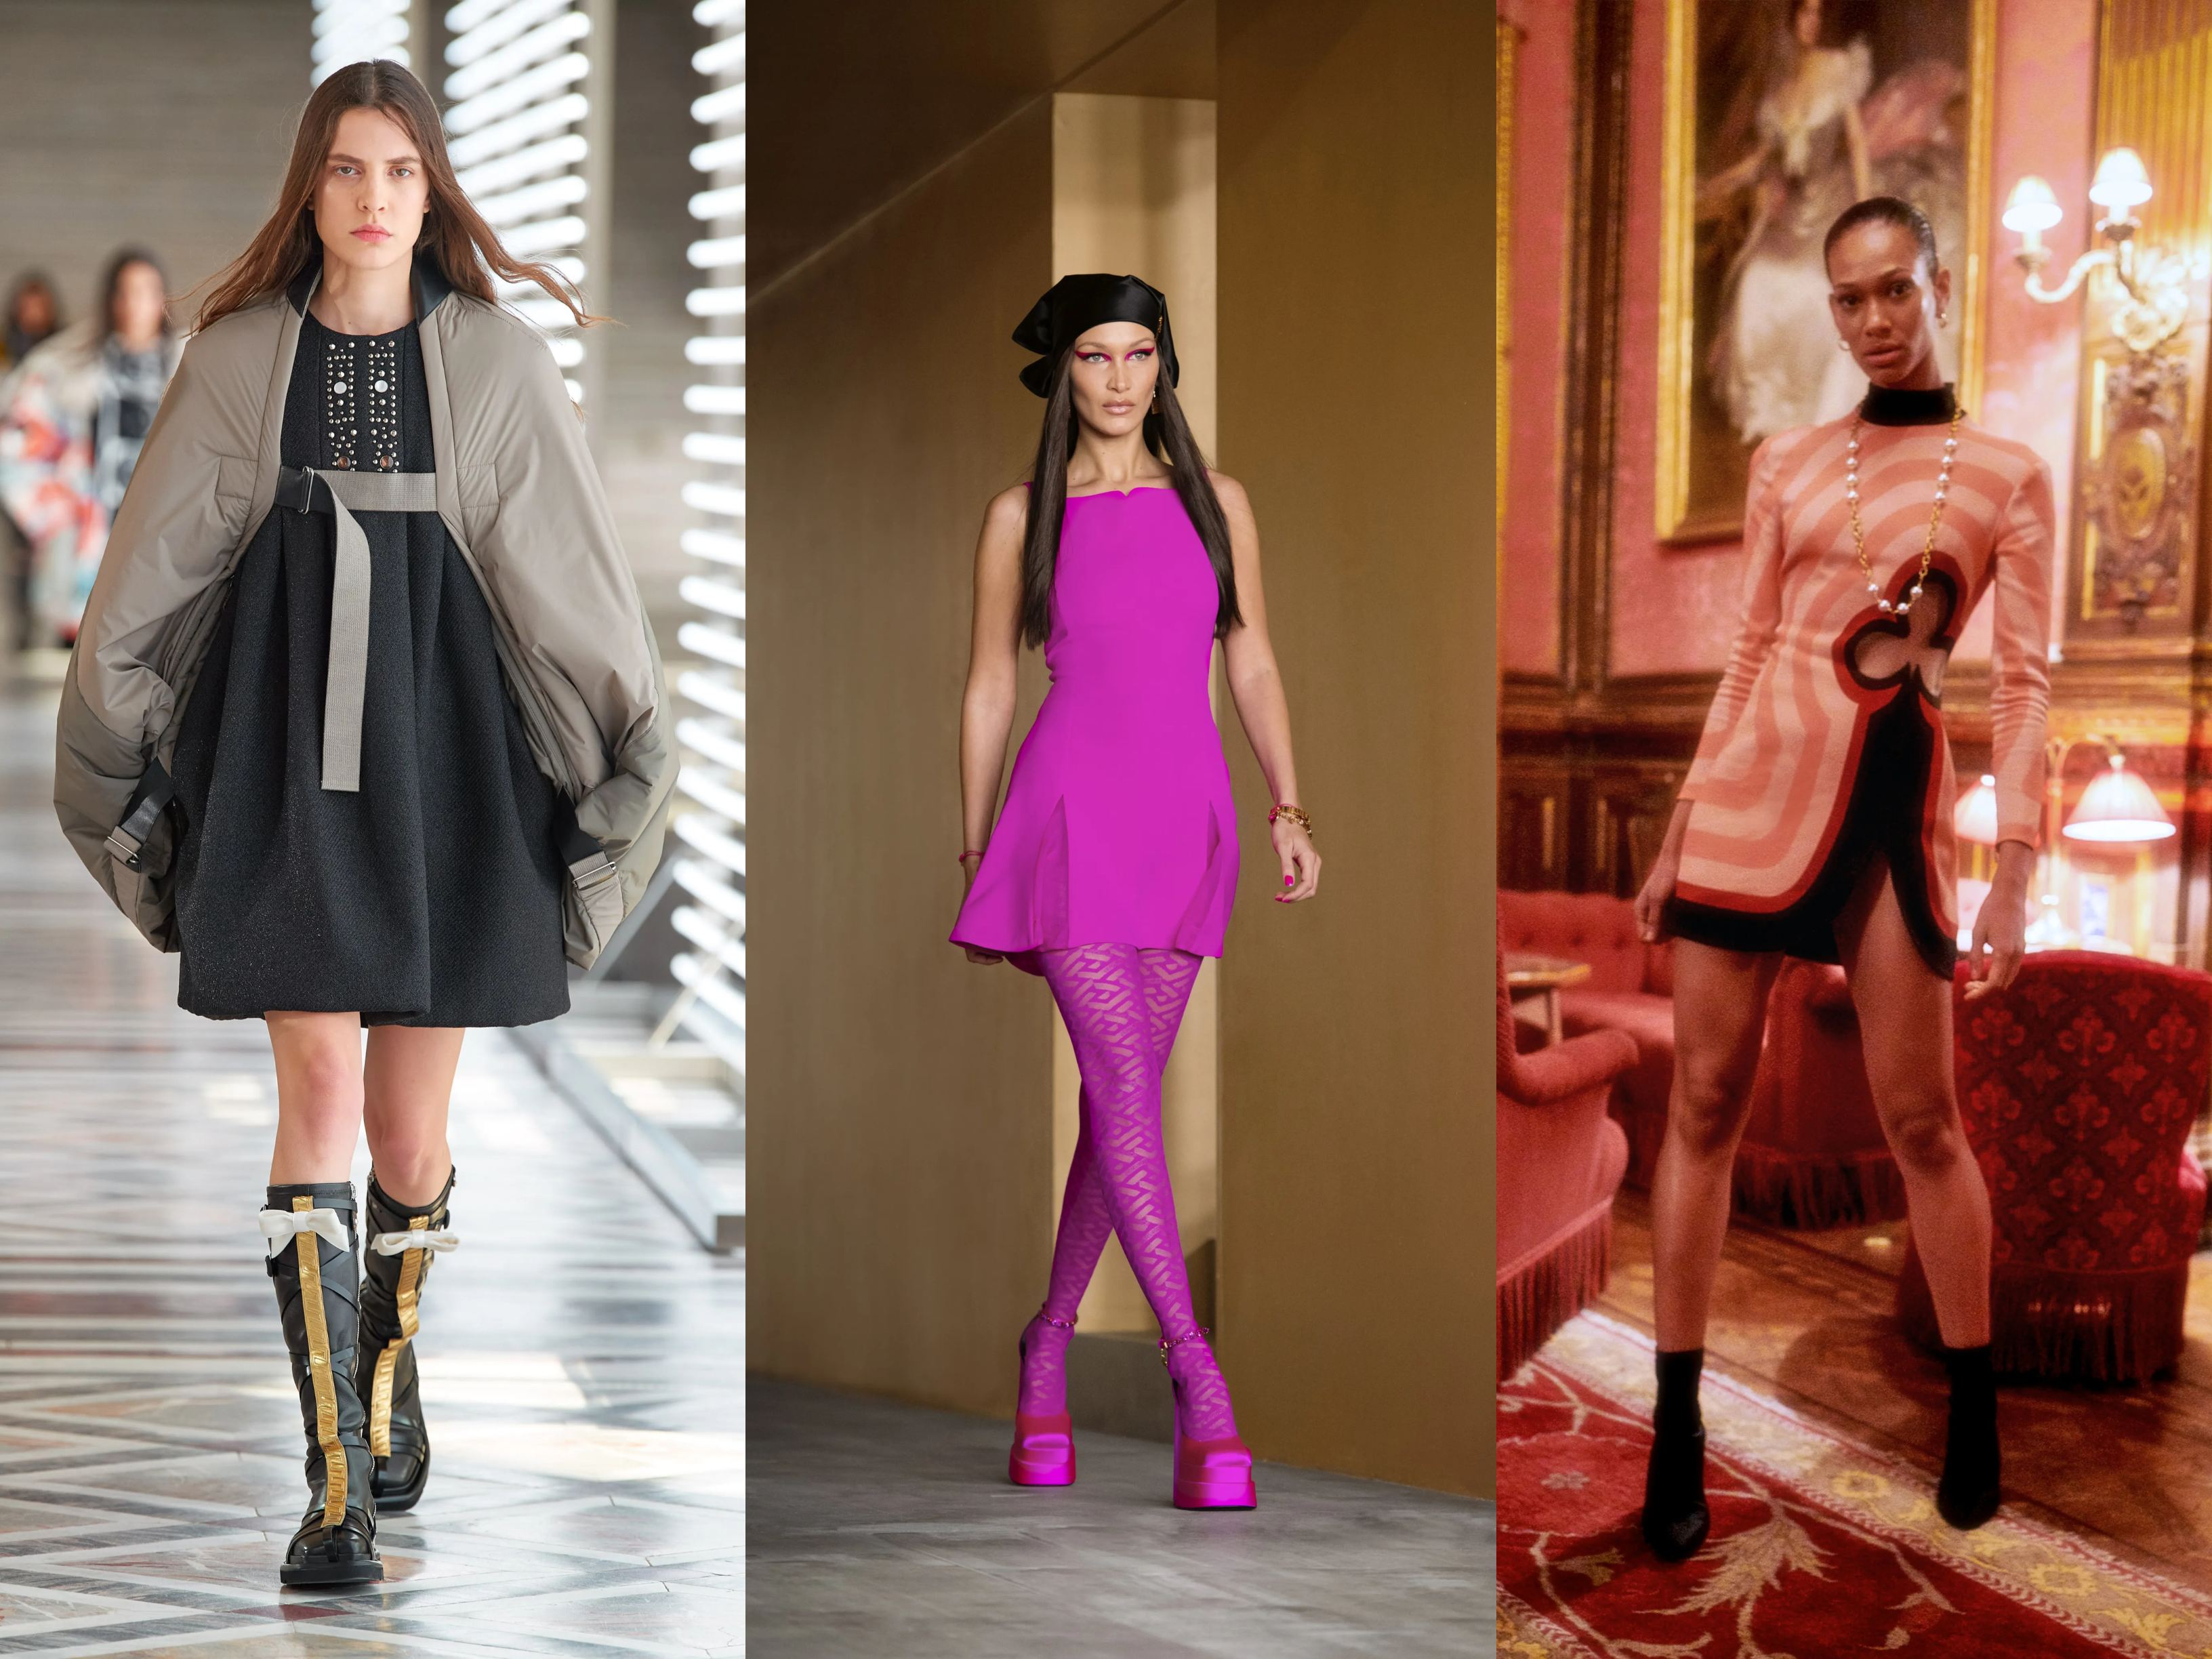 Models wearing AW21 trends Mini skirts and dresses